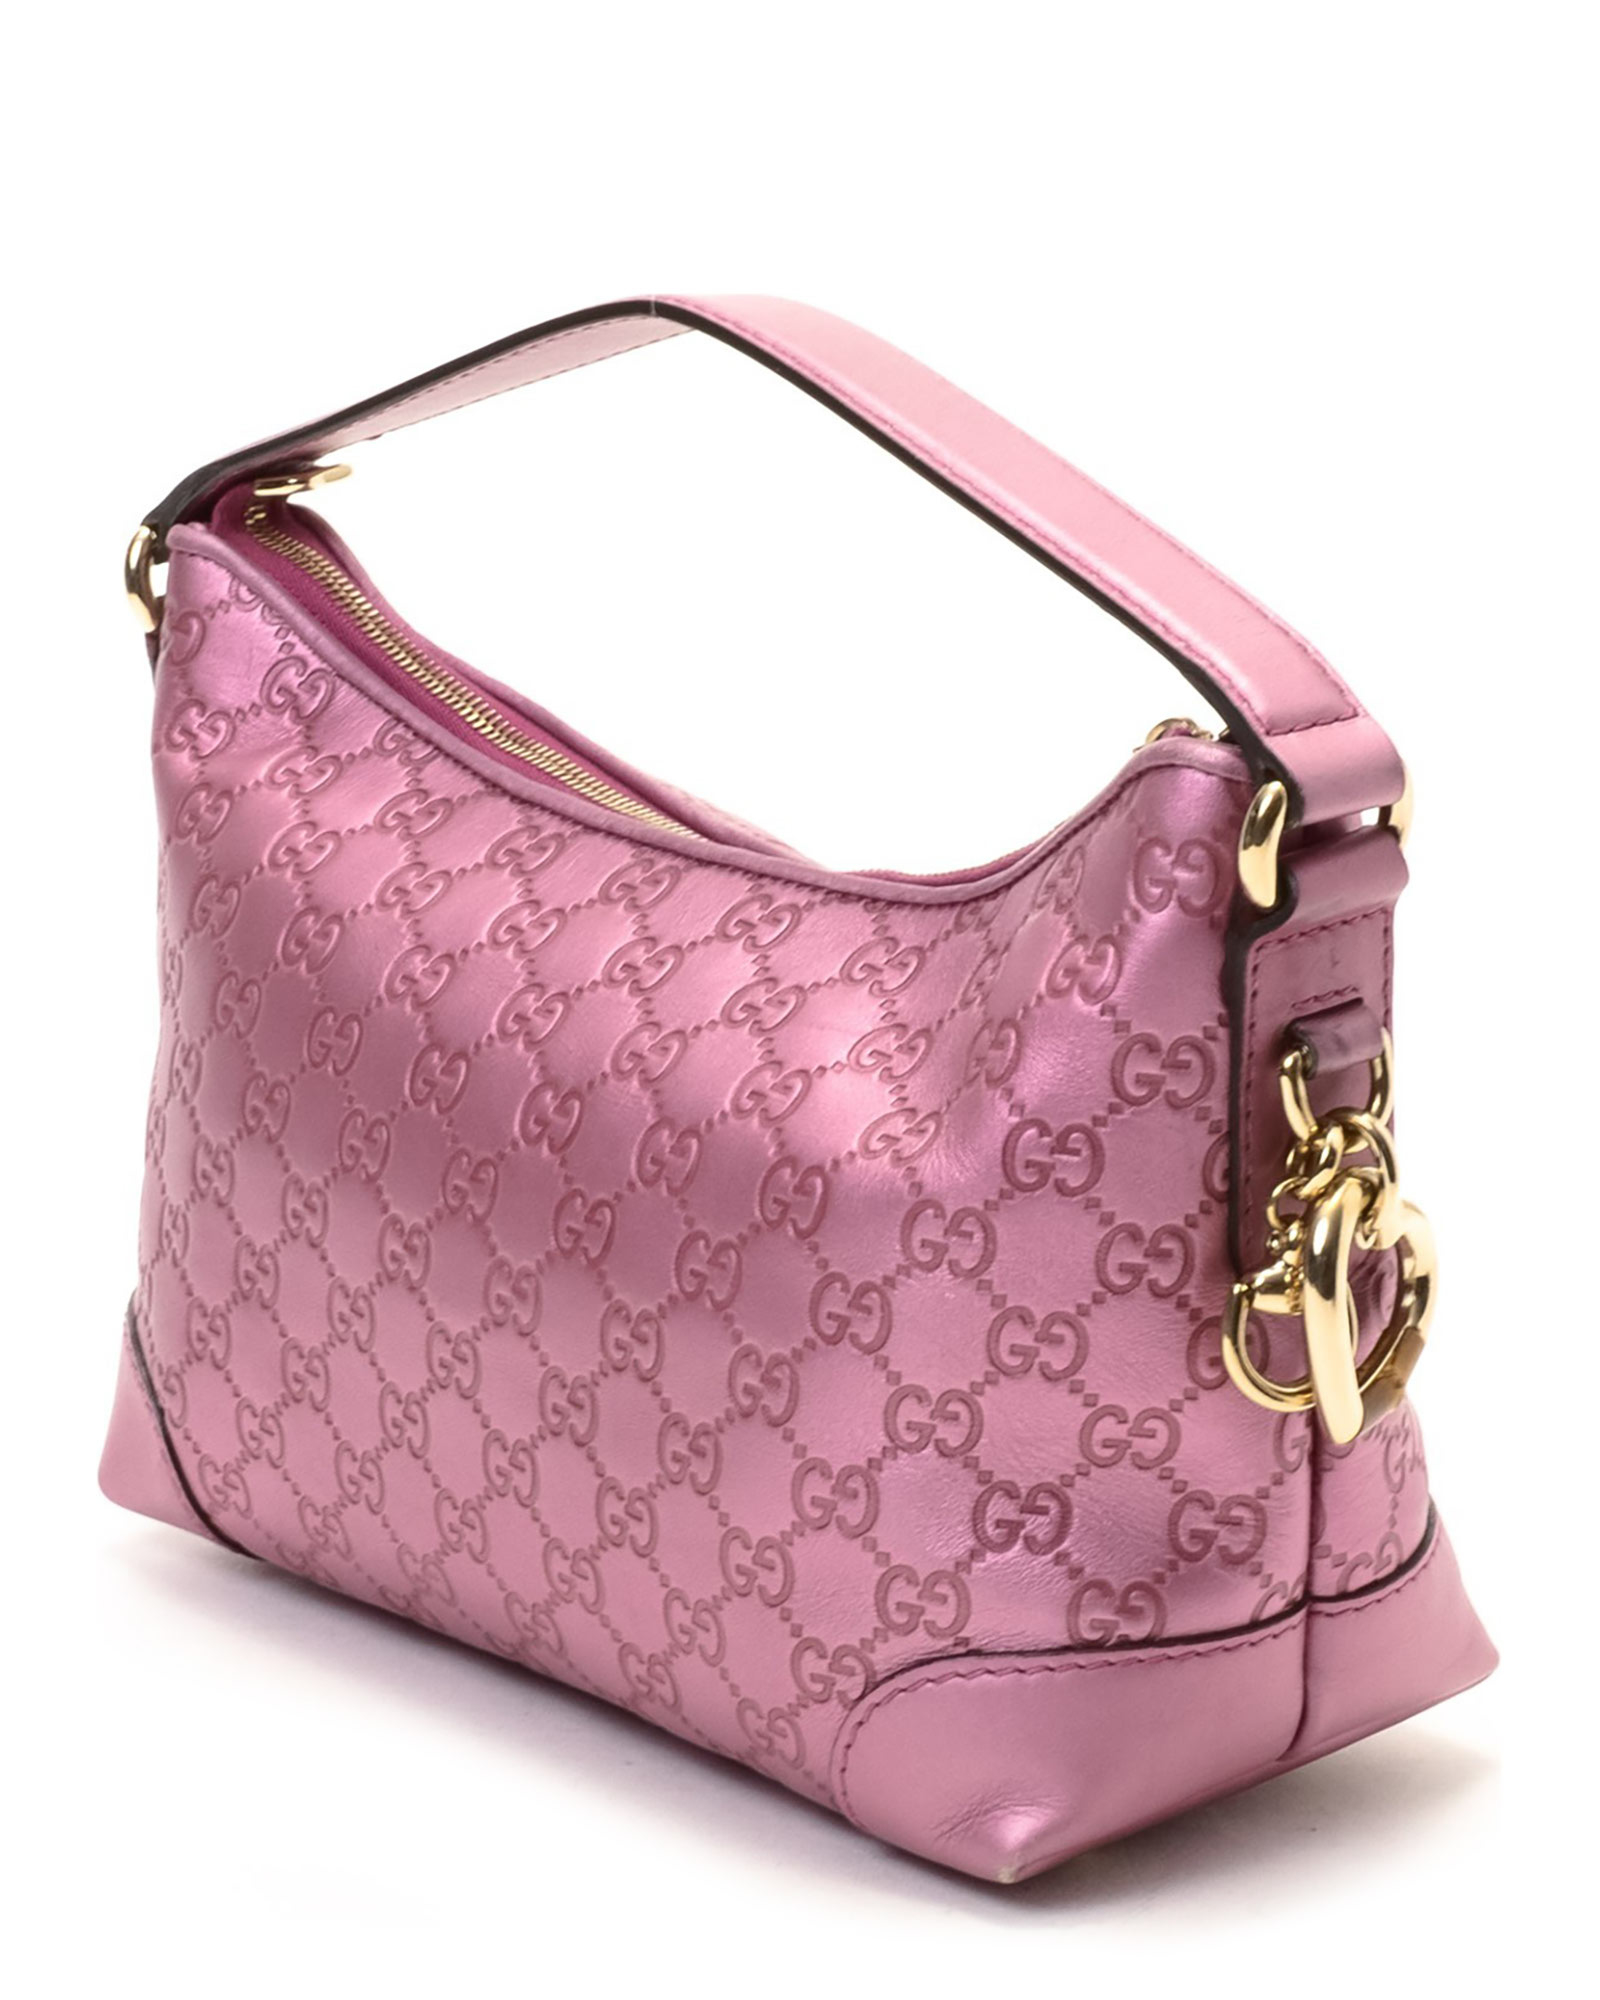 Gucci Pink Shoulder Bag - Vintage in Pink | Lyst